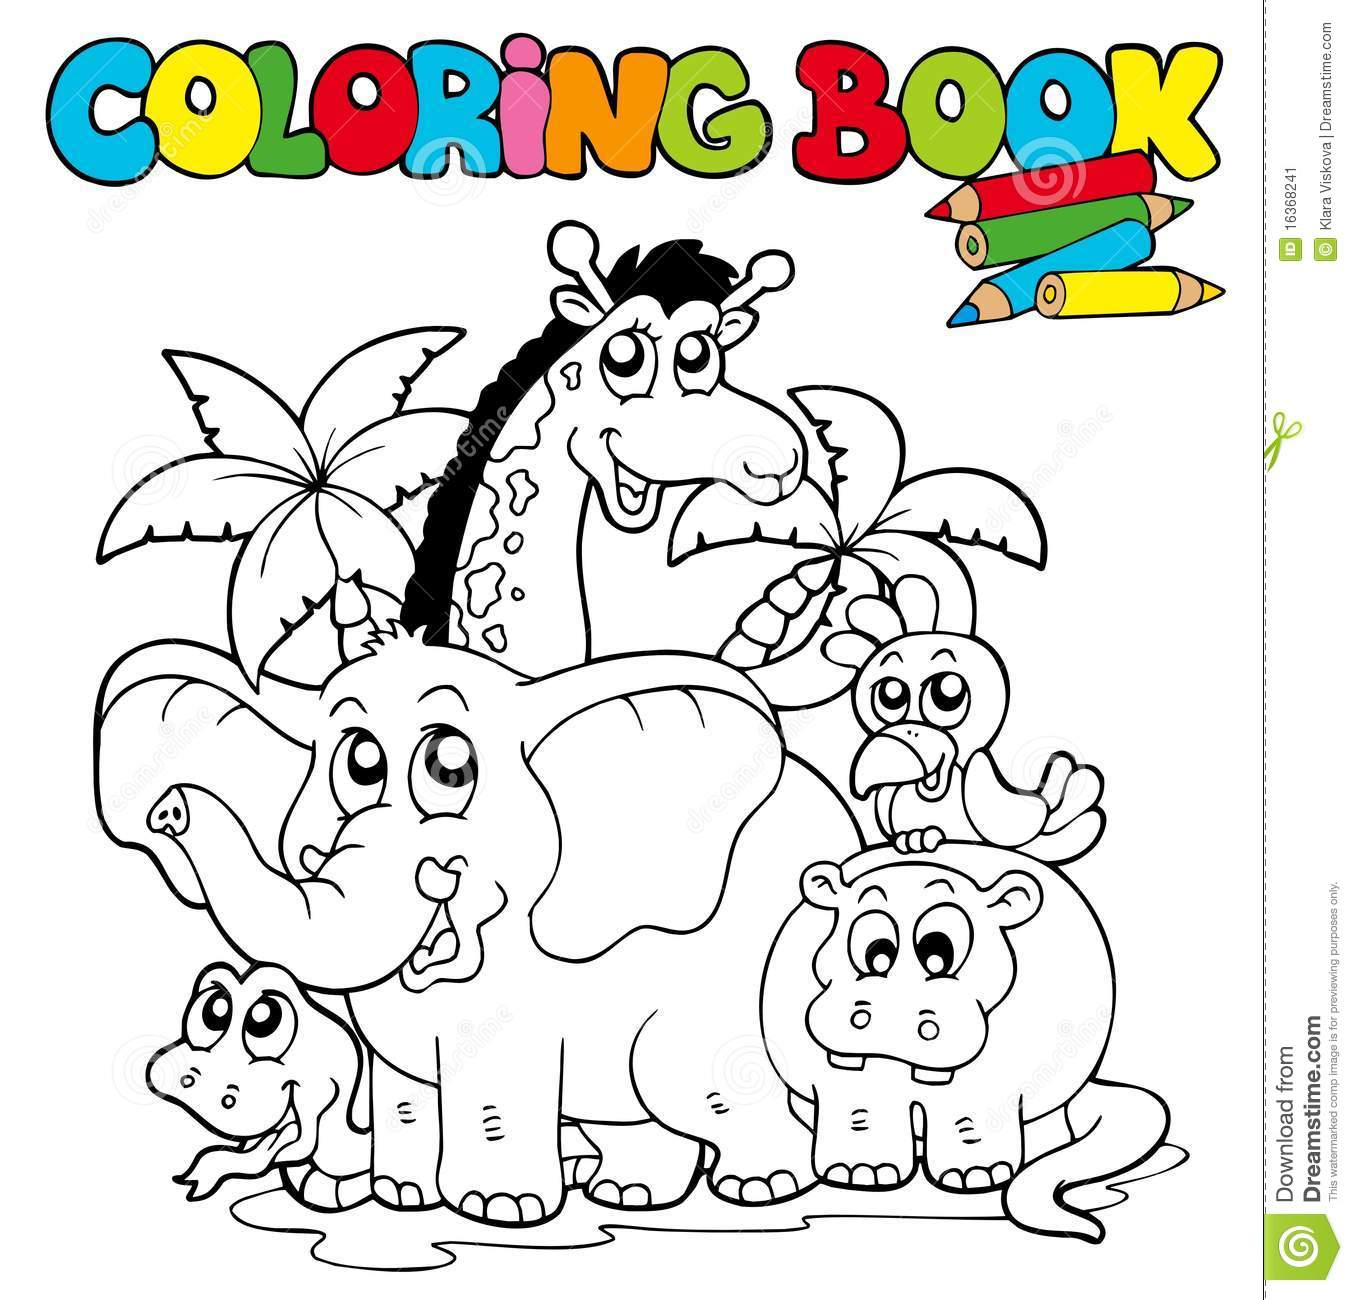 royalty free stock photo download coloring book with cute animals - Coloring Book Animals